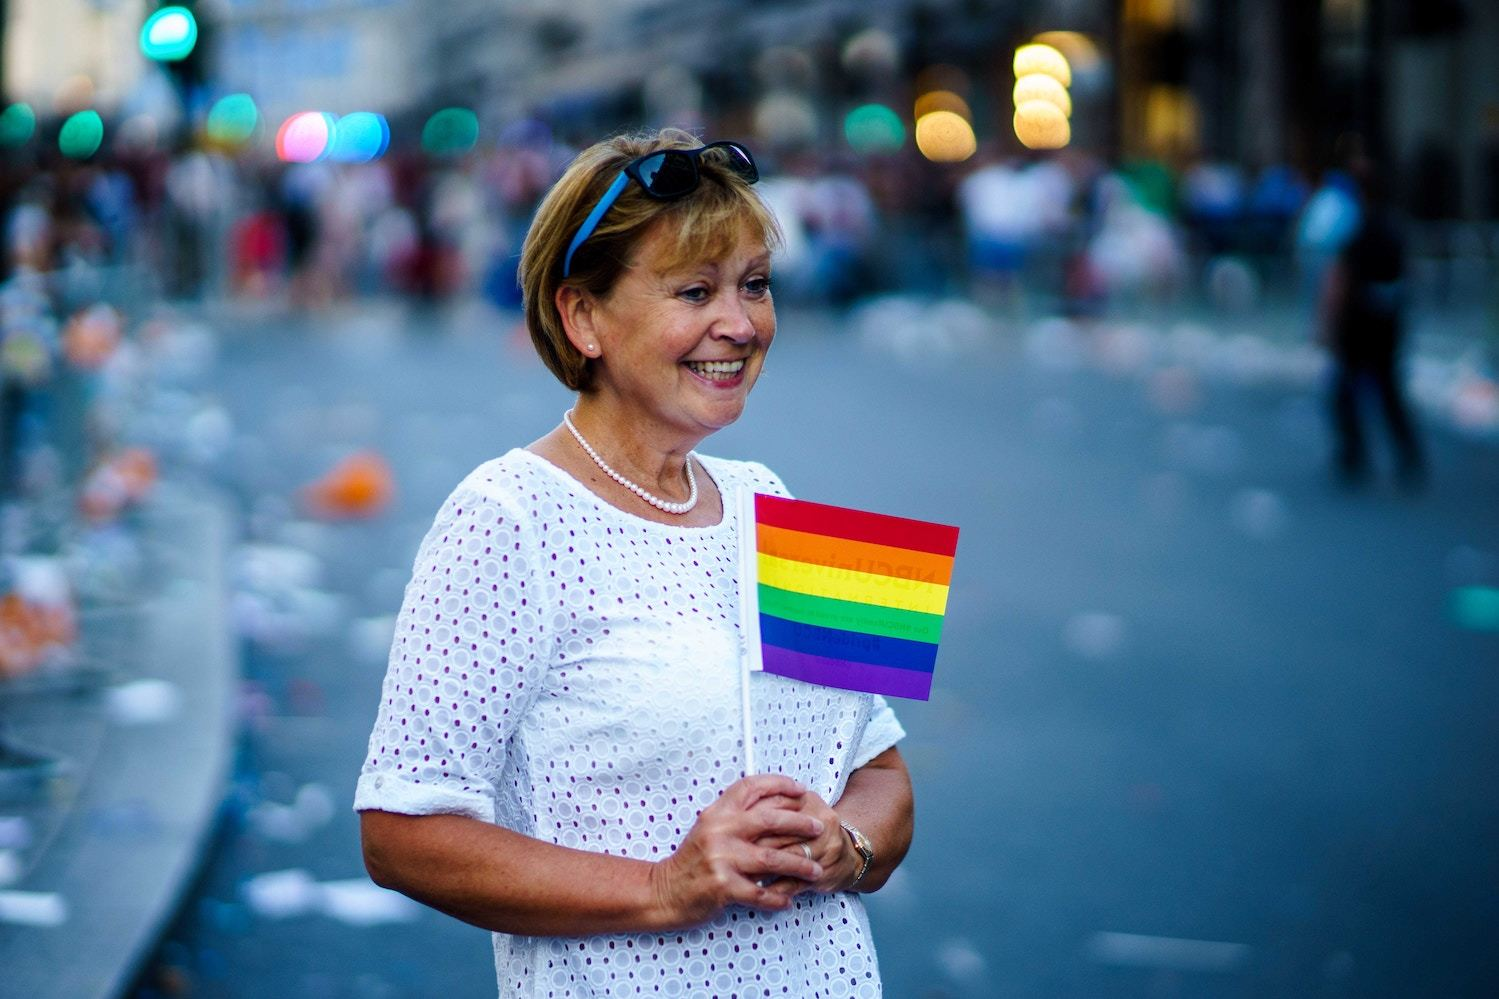 A woman holds a small rainbow flag in the aftermath of a parade